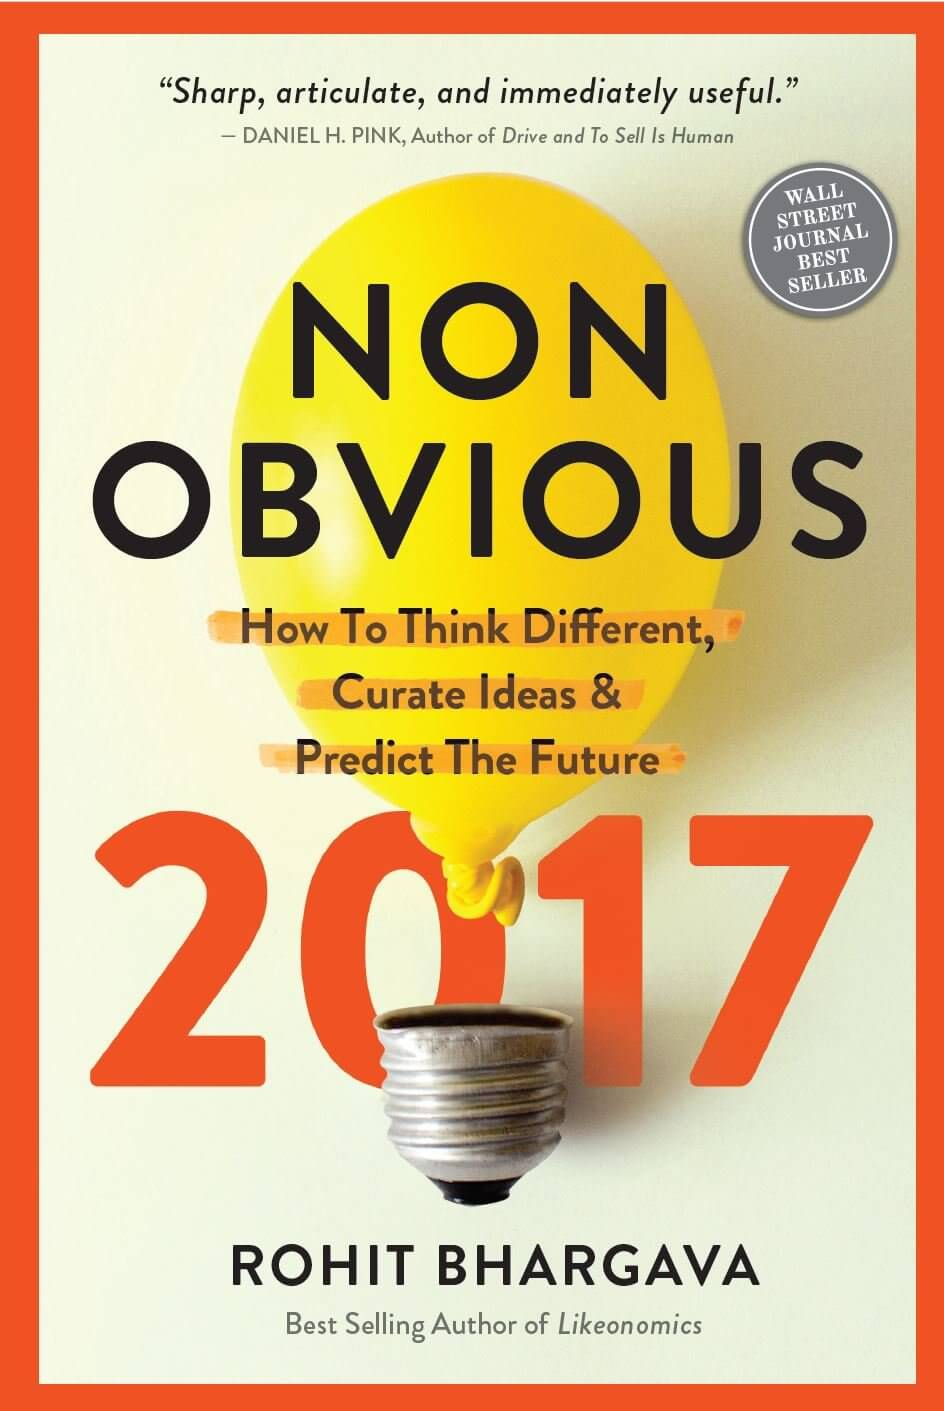 This book helps explore upcoming trends and niches for 2017